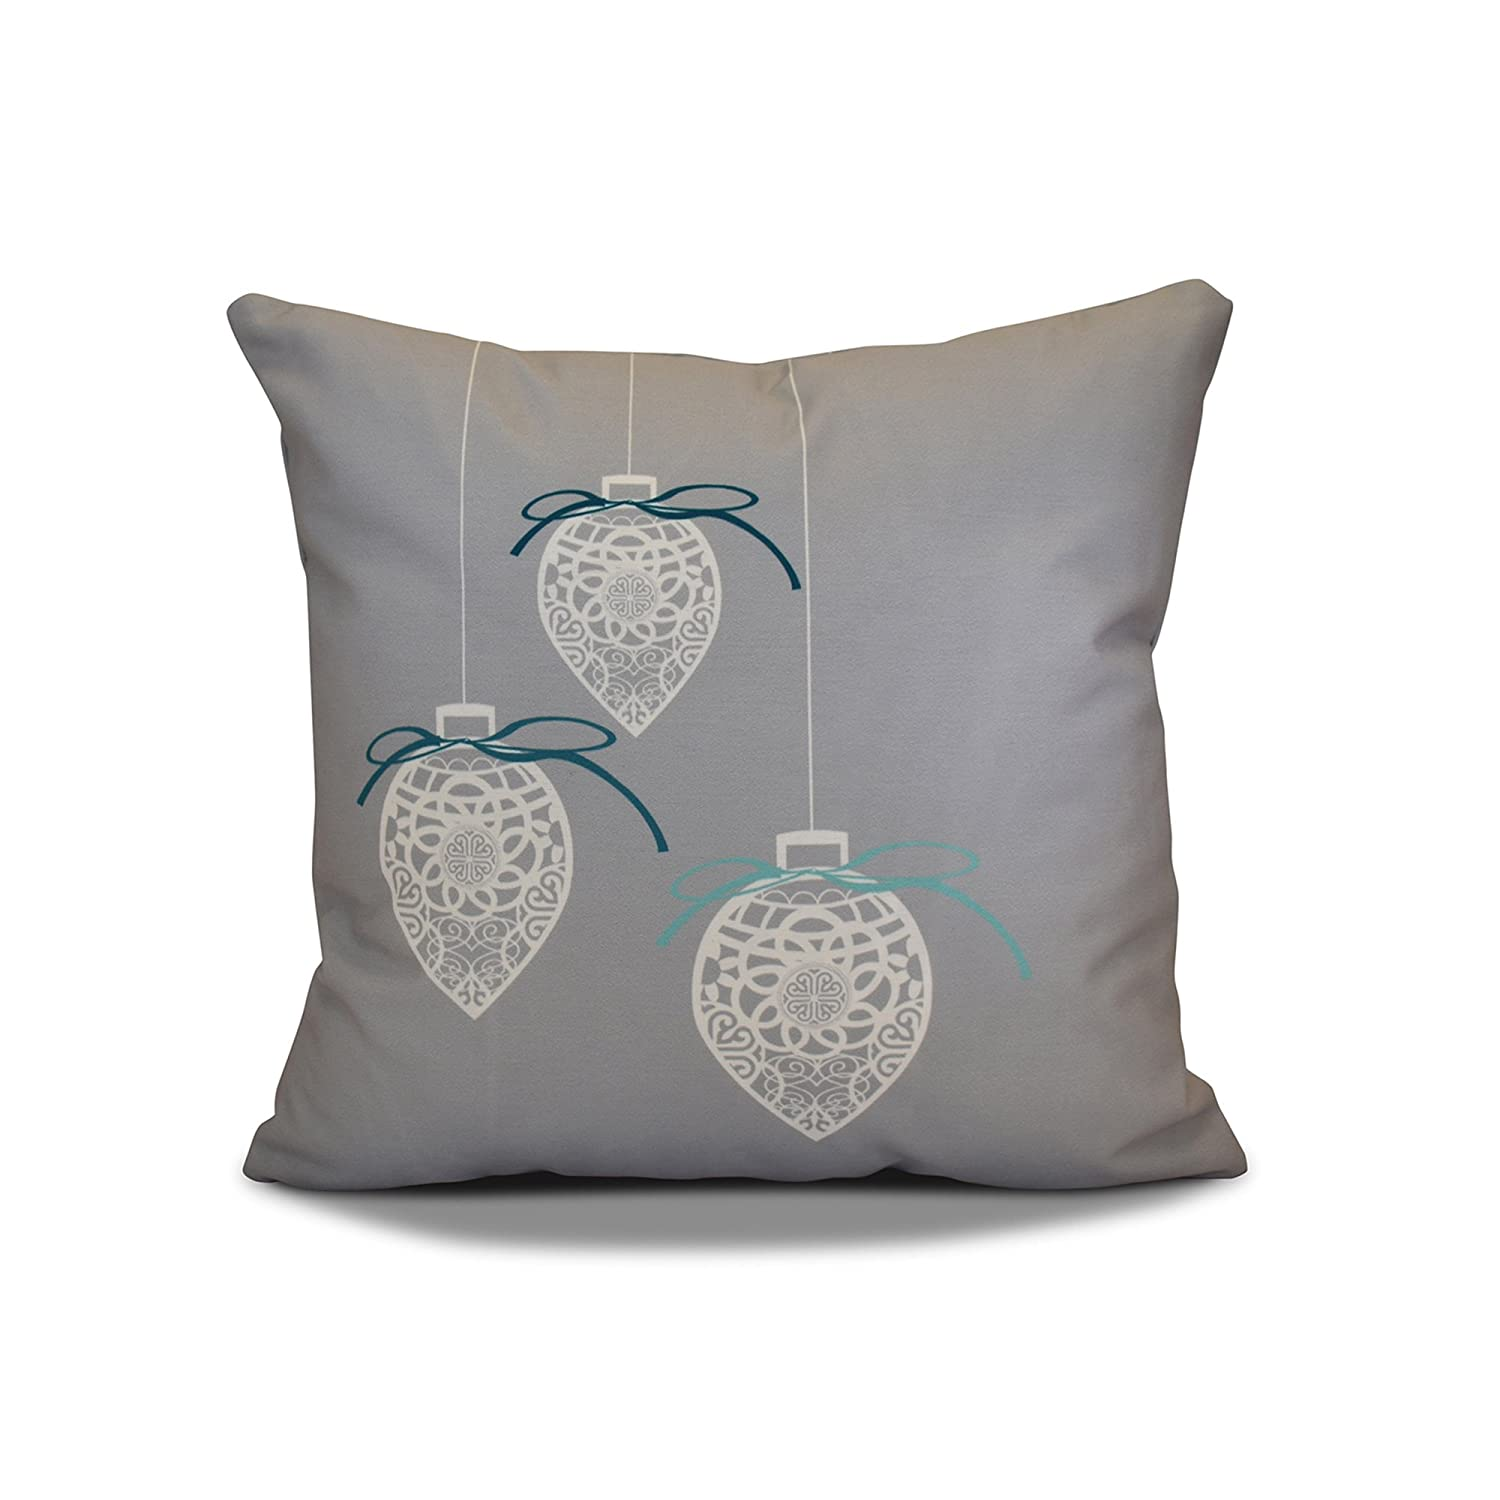 E by design PHGN679GY1-18 18 x 18 inch Geometric Print Gray Decorative Holiday Pillow